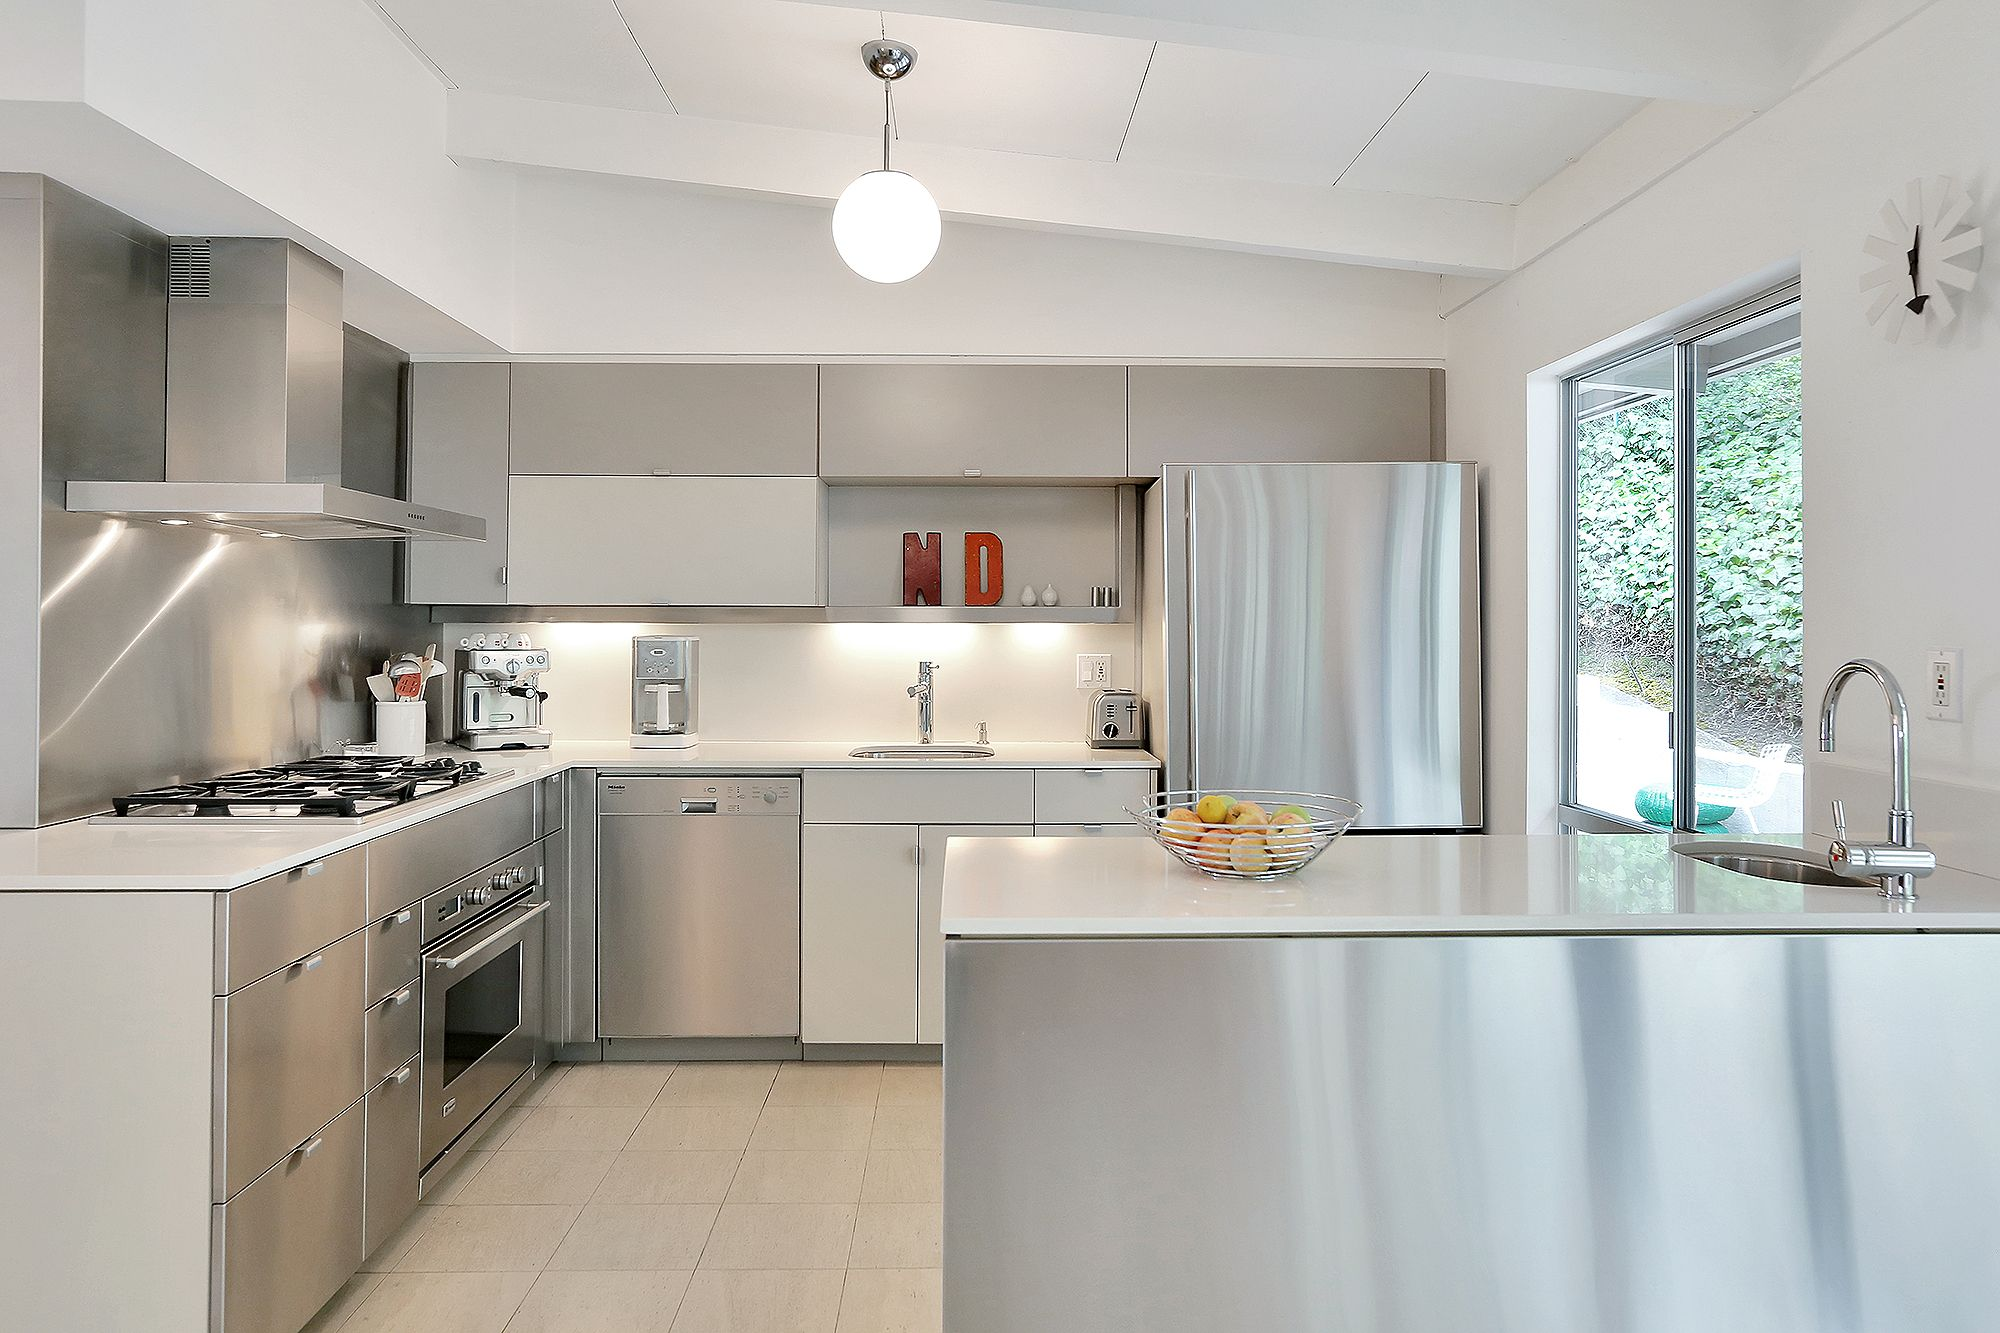 High End Kitchen Appliance Brands Our Pick For A 48inch Highend